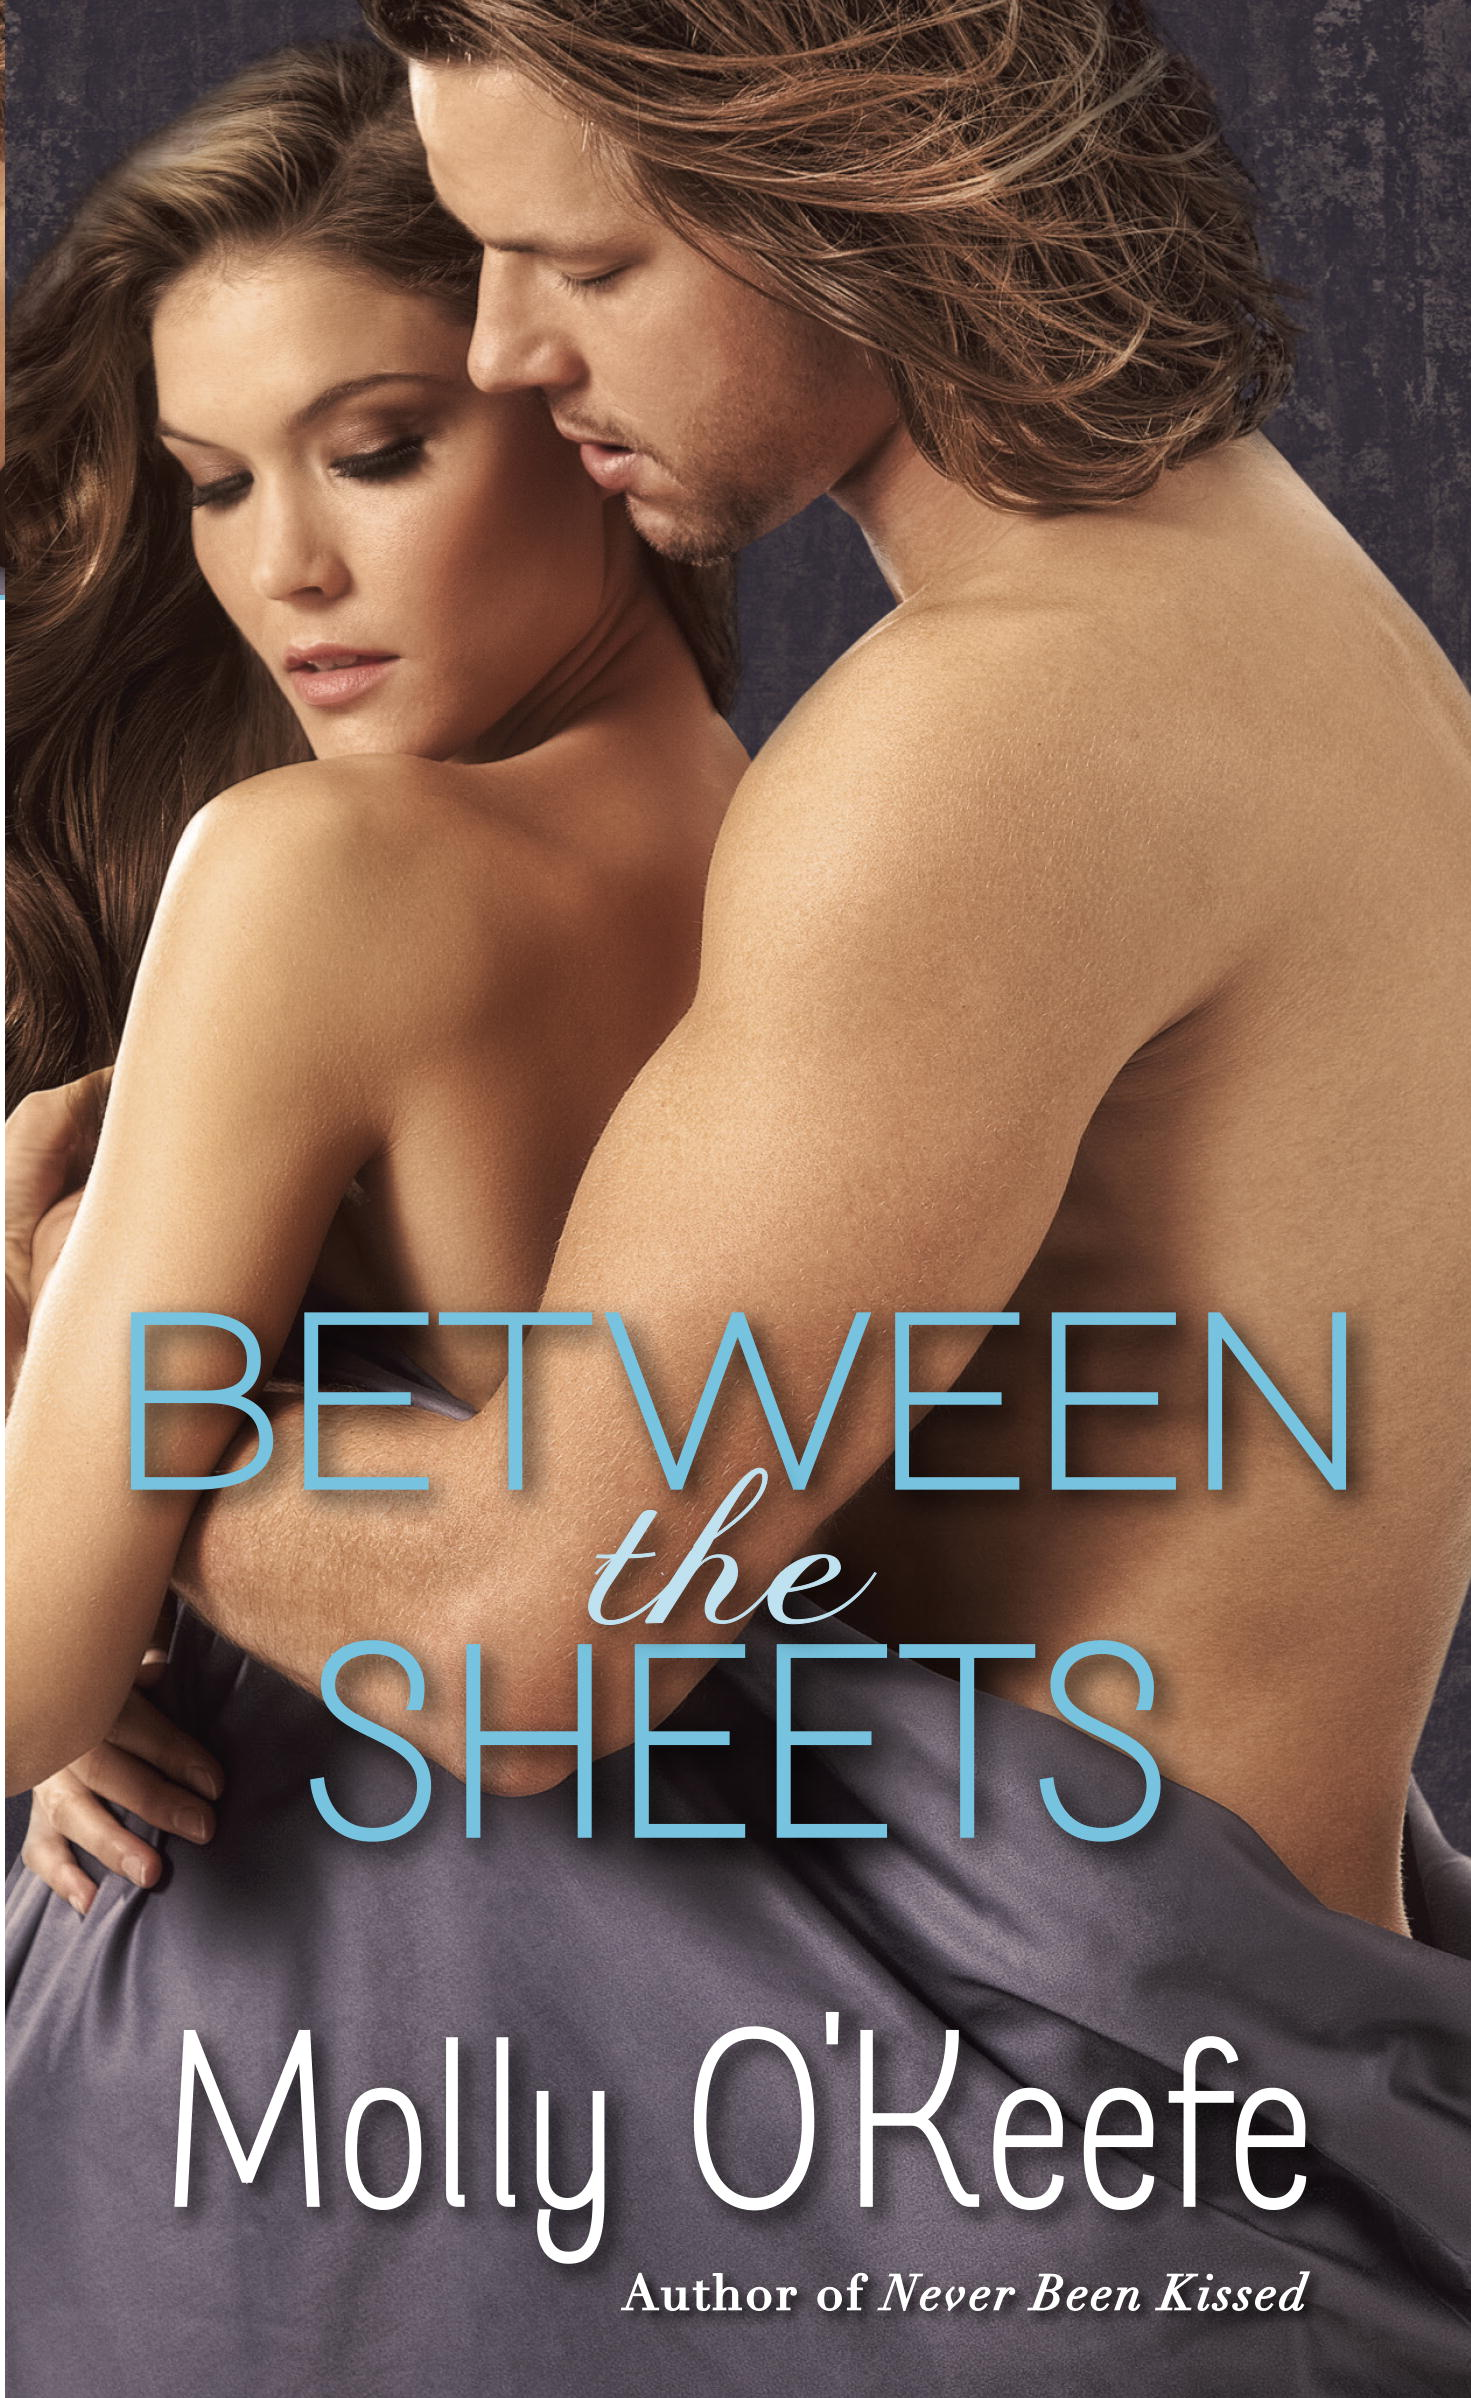 Between the Sheets by Molly O'Keefe  Amazon  |  Goodreads